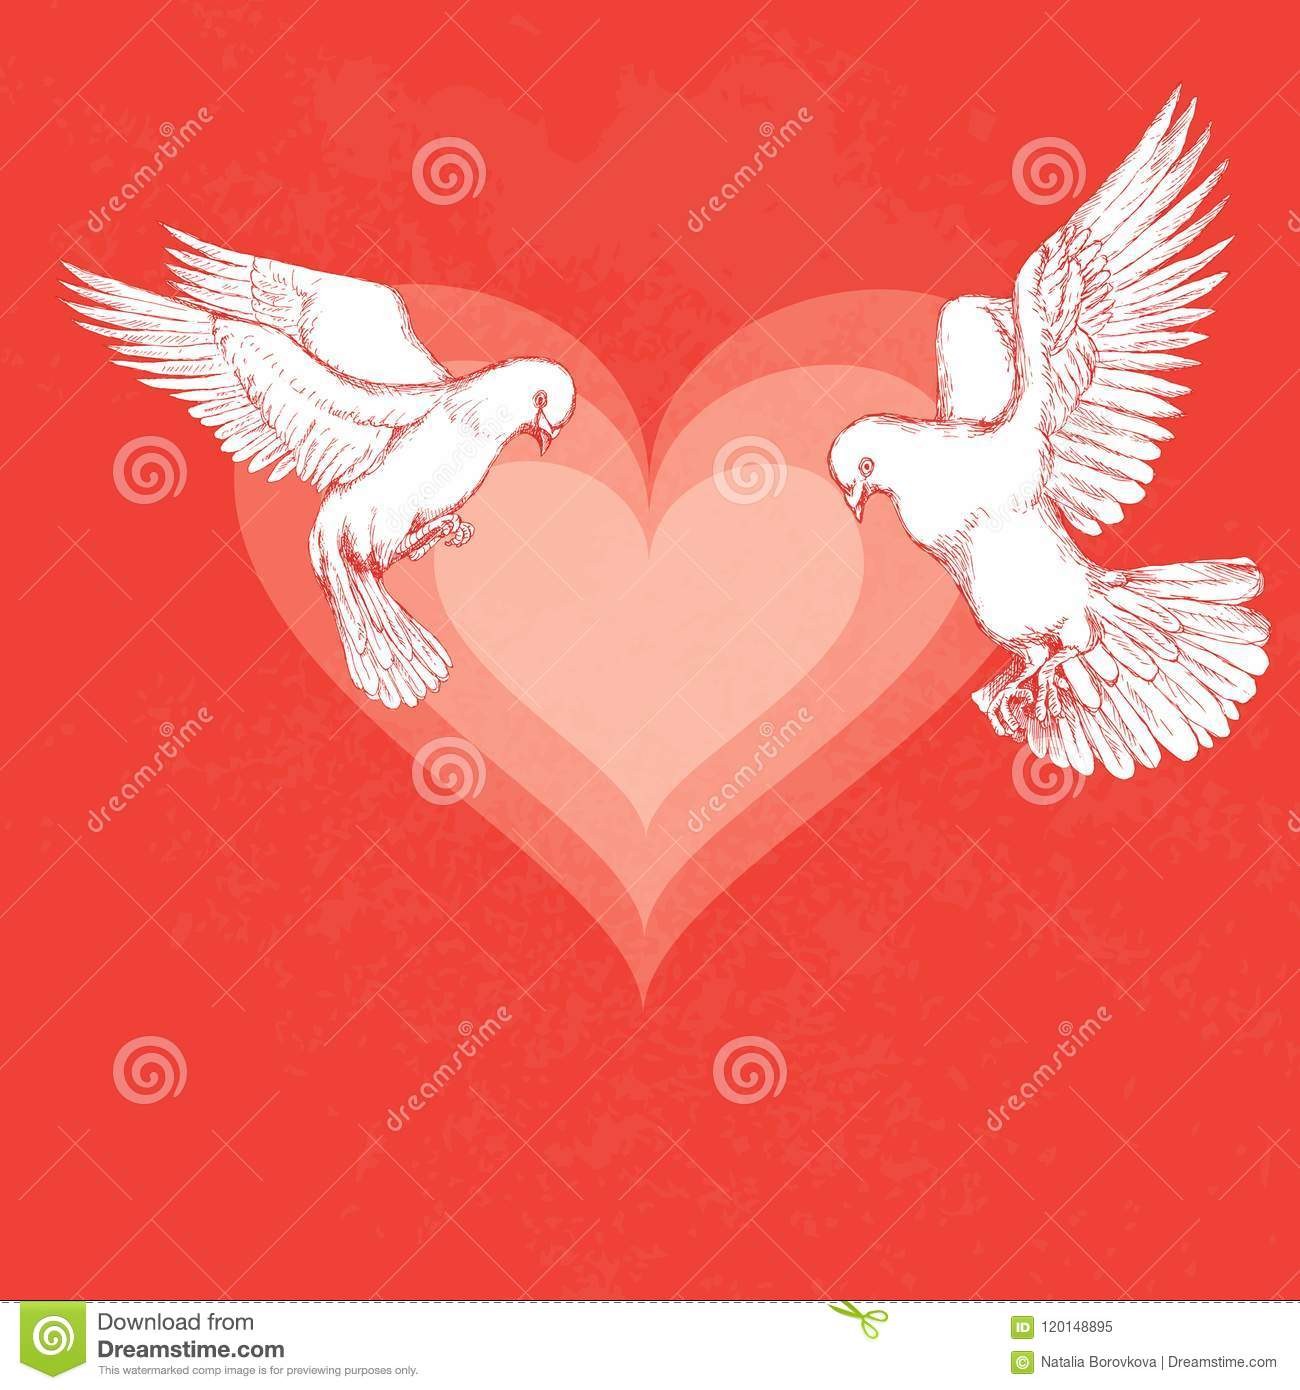 White Dove Flies. Bird On Color Background, Hearts For Romantic ...